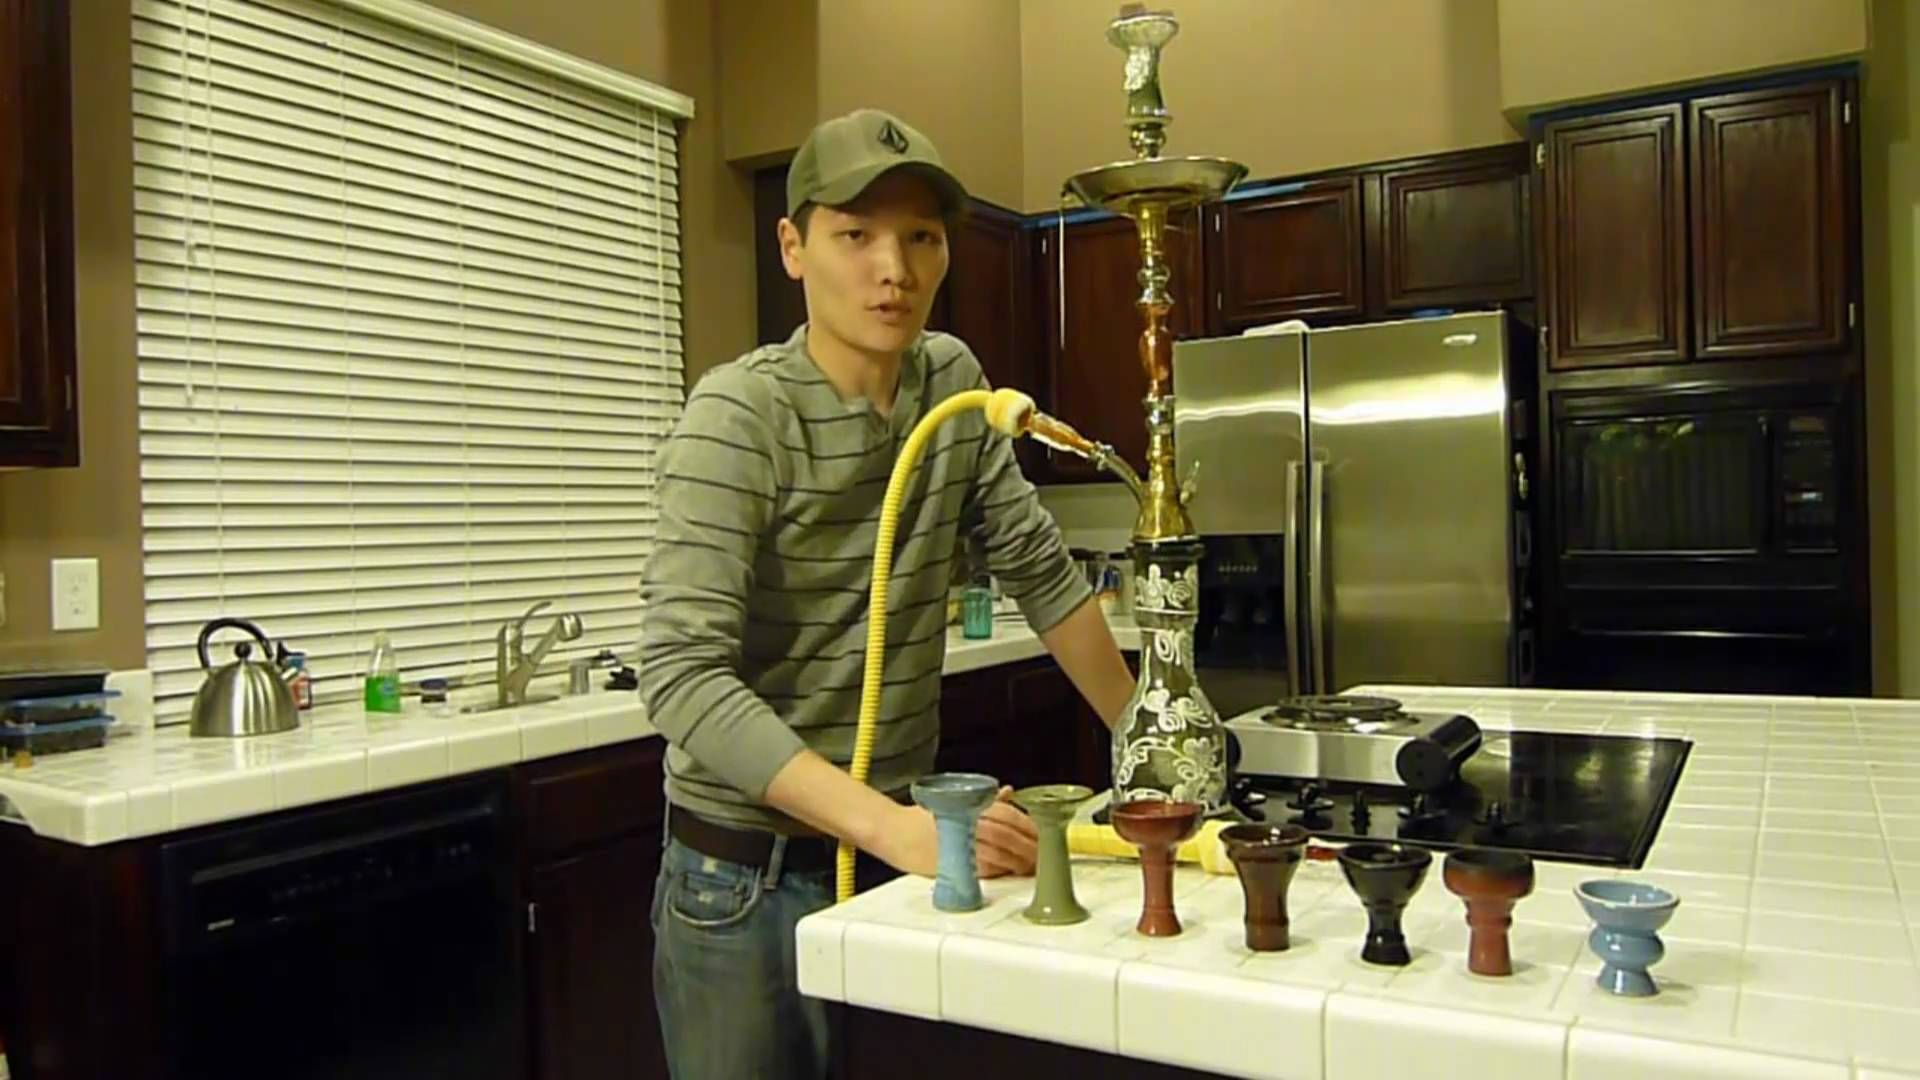 How To Set Up Your KM or Egyptian Hookah Hookah, Pipes